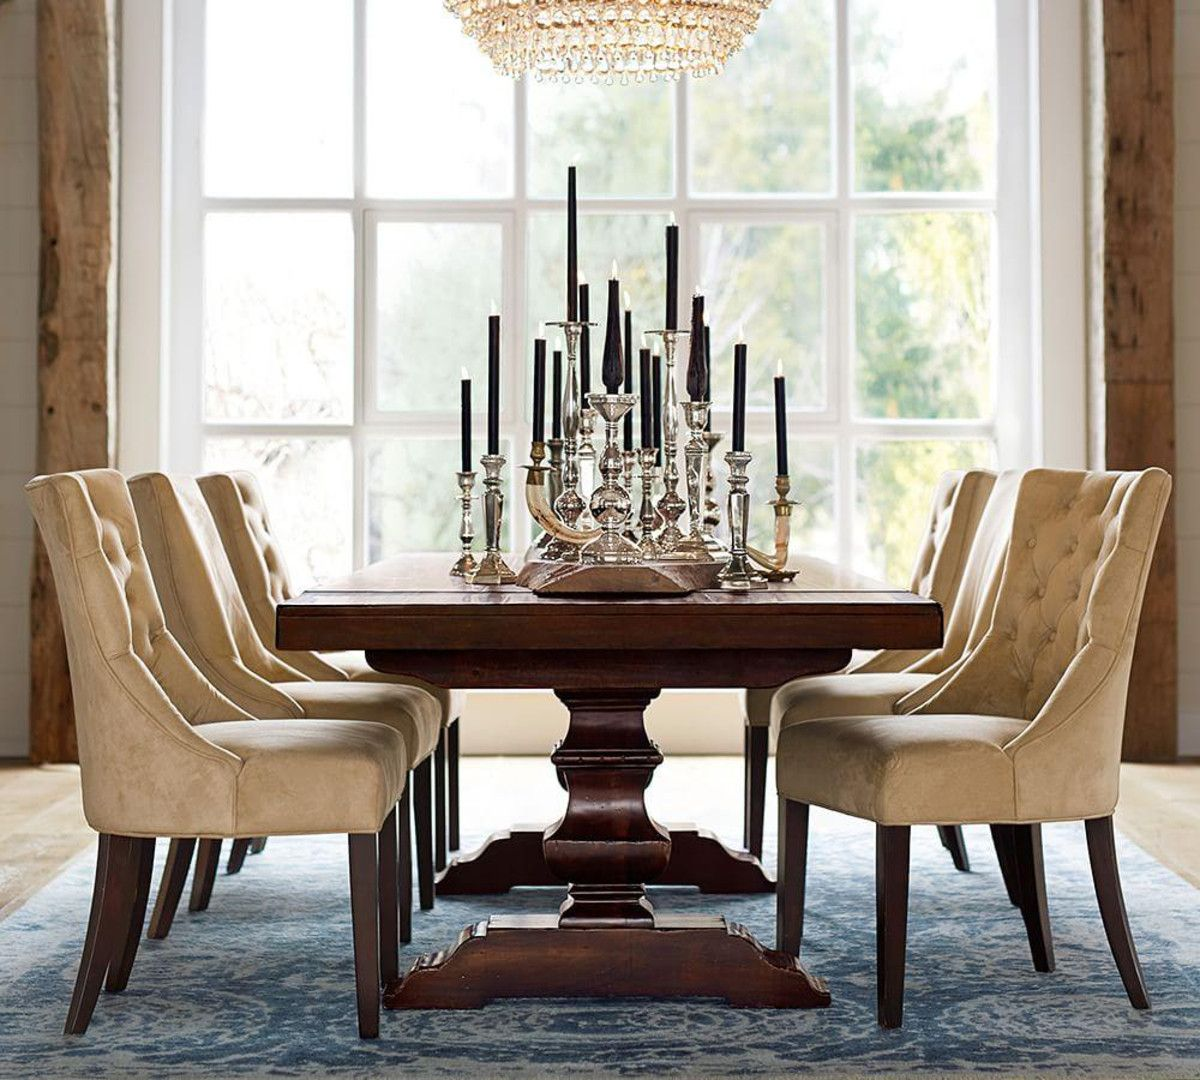 Banks Extending Dining Table Pottery Barn Au Pottery Barn Dining Table Elegant Dining Room Dining Room Table